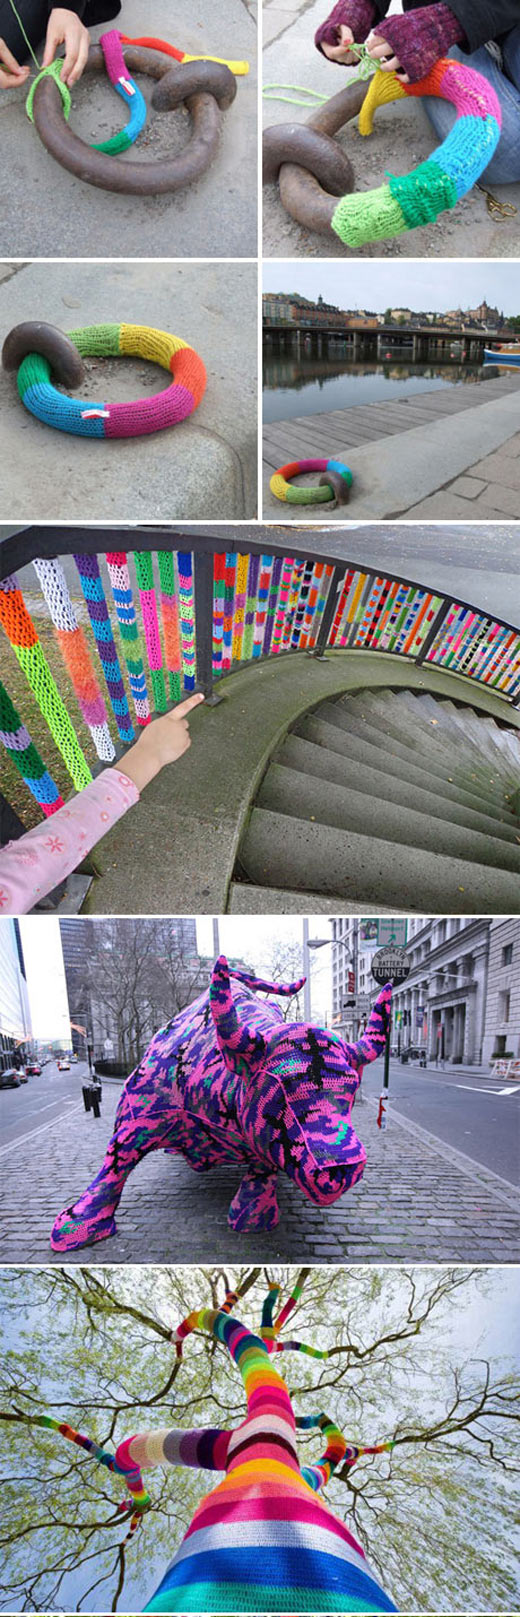 Massive yarn bombing in the city...